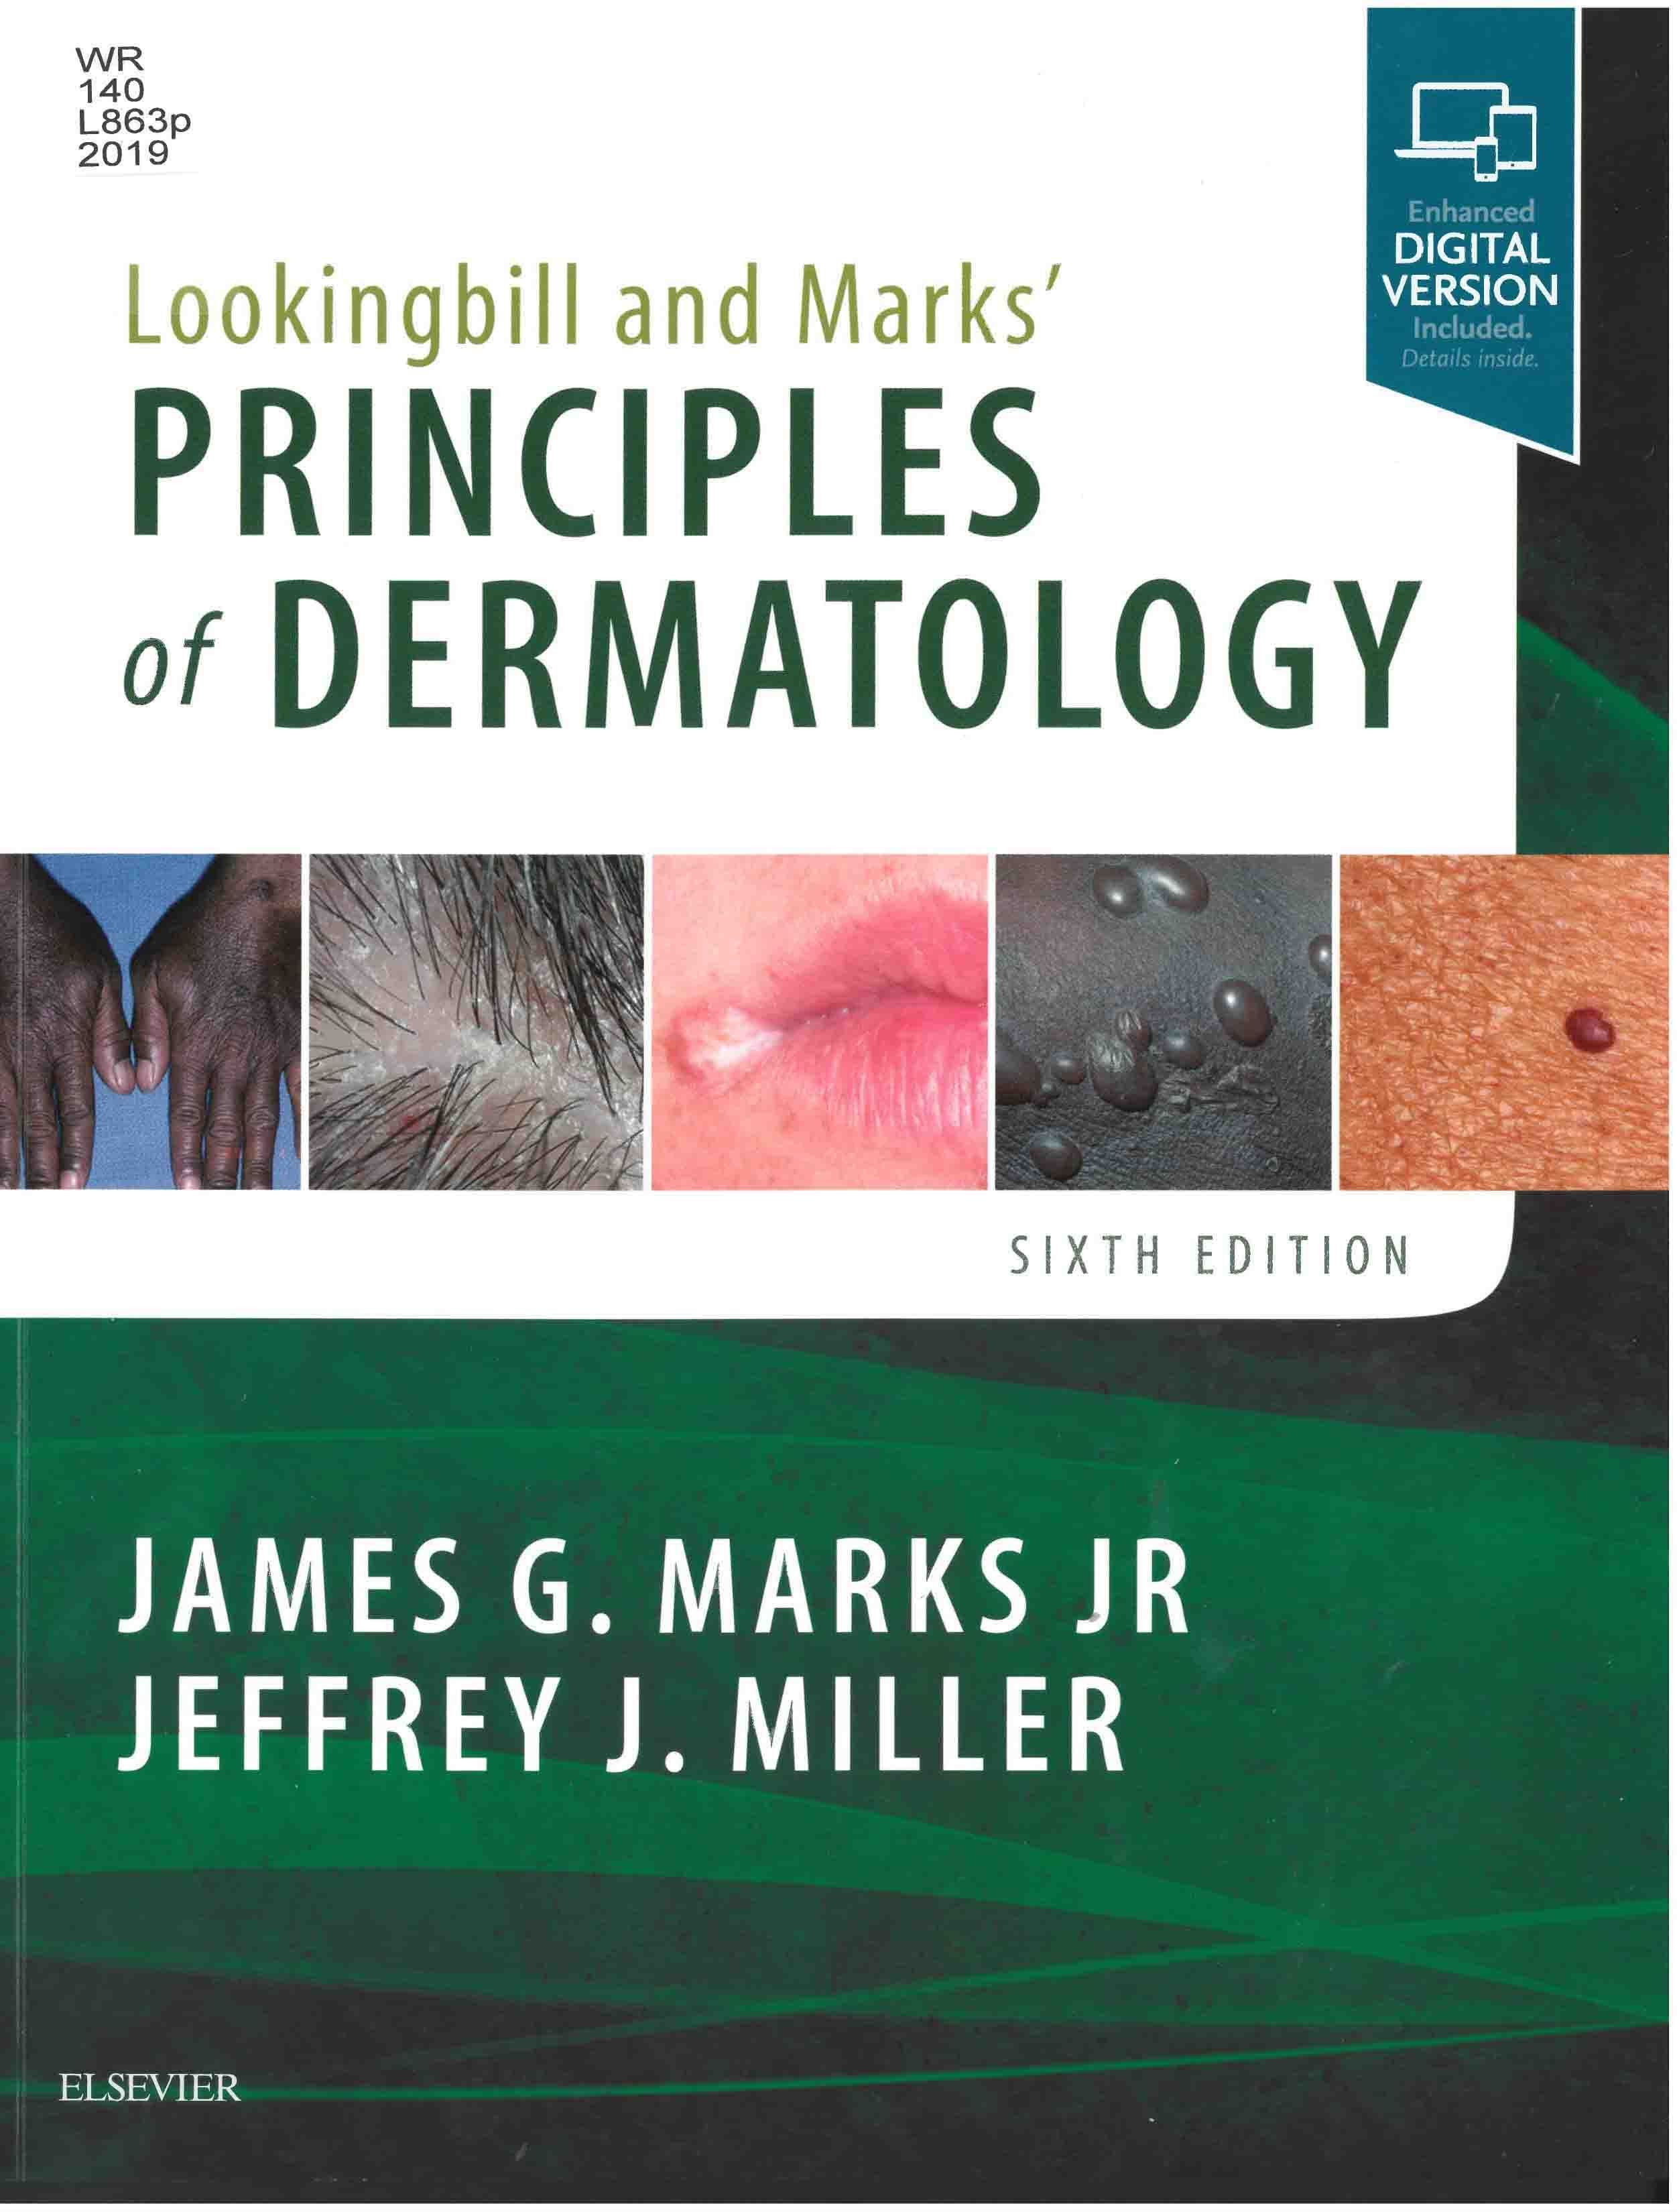 Added the 6th and newest edition of Lookingbill and Marks' Principles of  Dermatology by James G. Marks and Jeffrey J. Miller. Also added the ebook  version ...